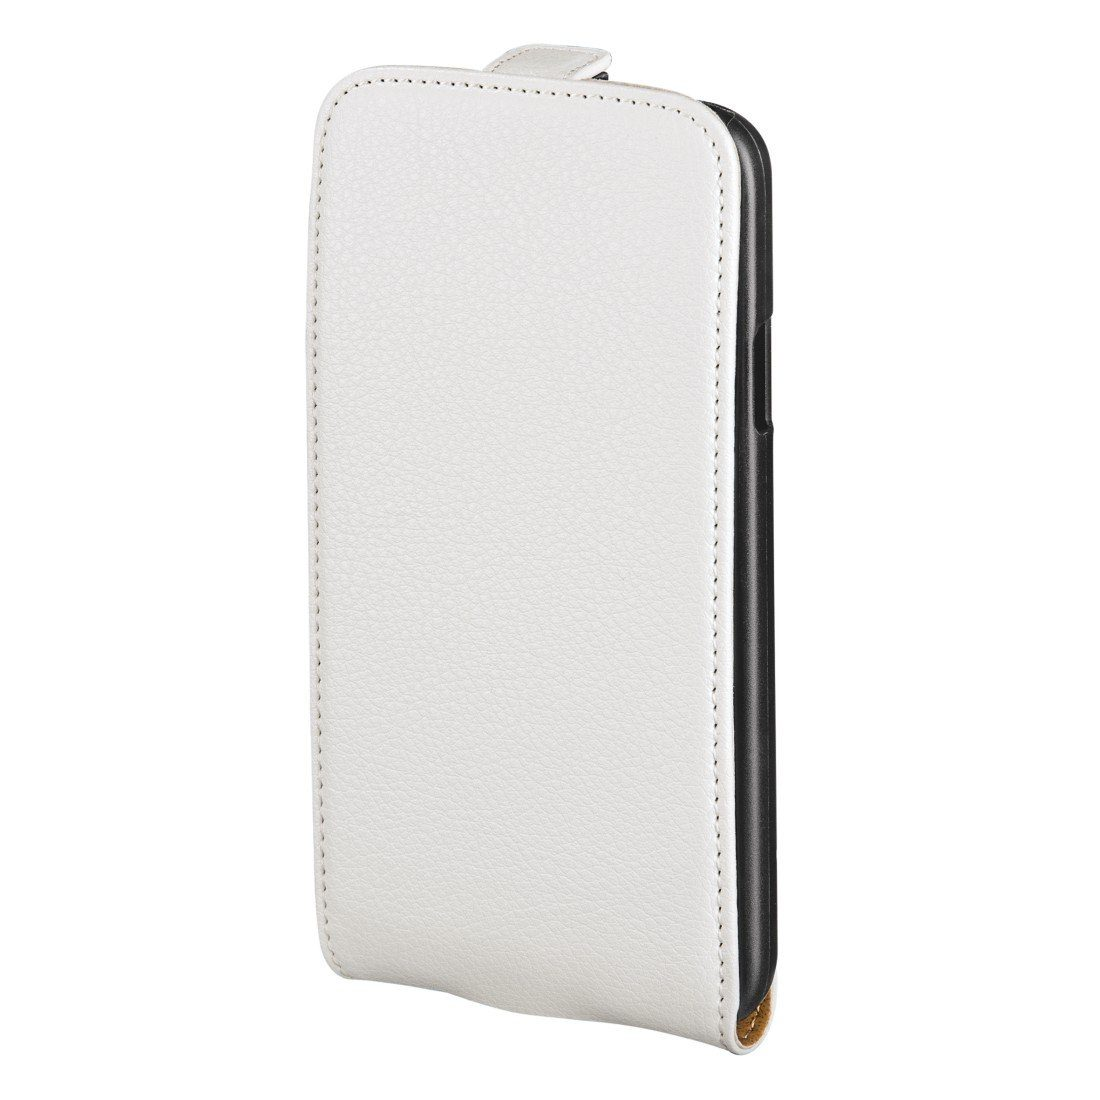 Hama Flap-Tasche Smart Case für Apple iPhone 6 Plus, Weiß